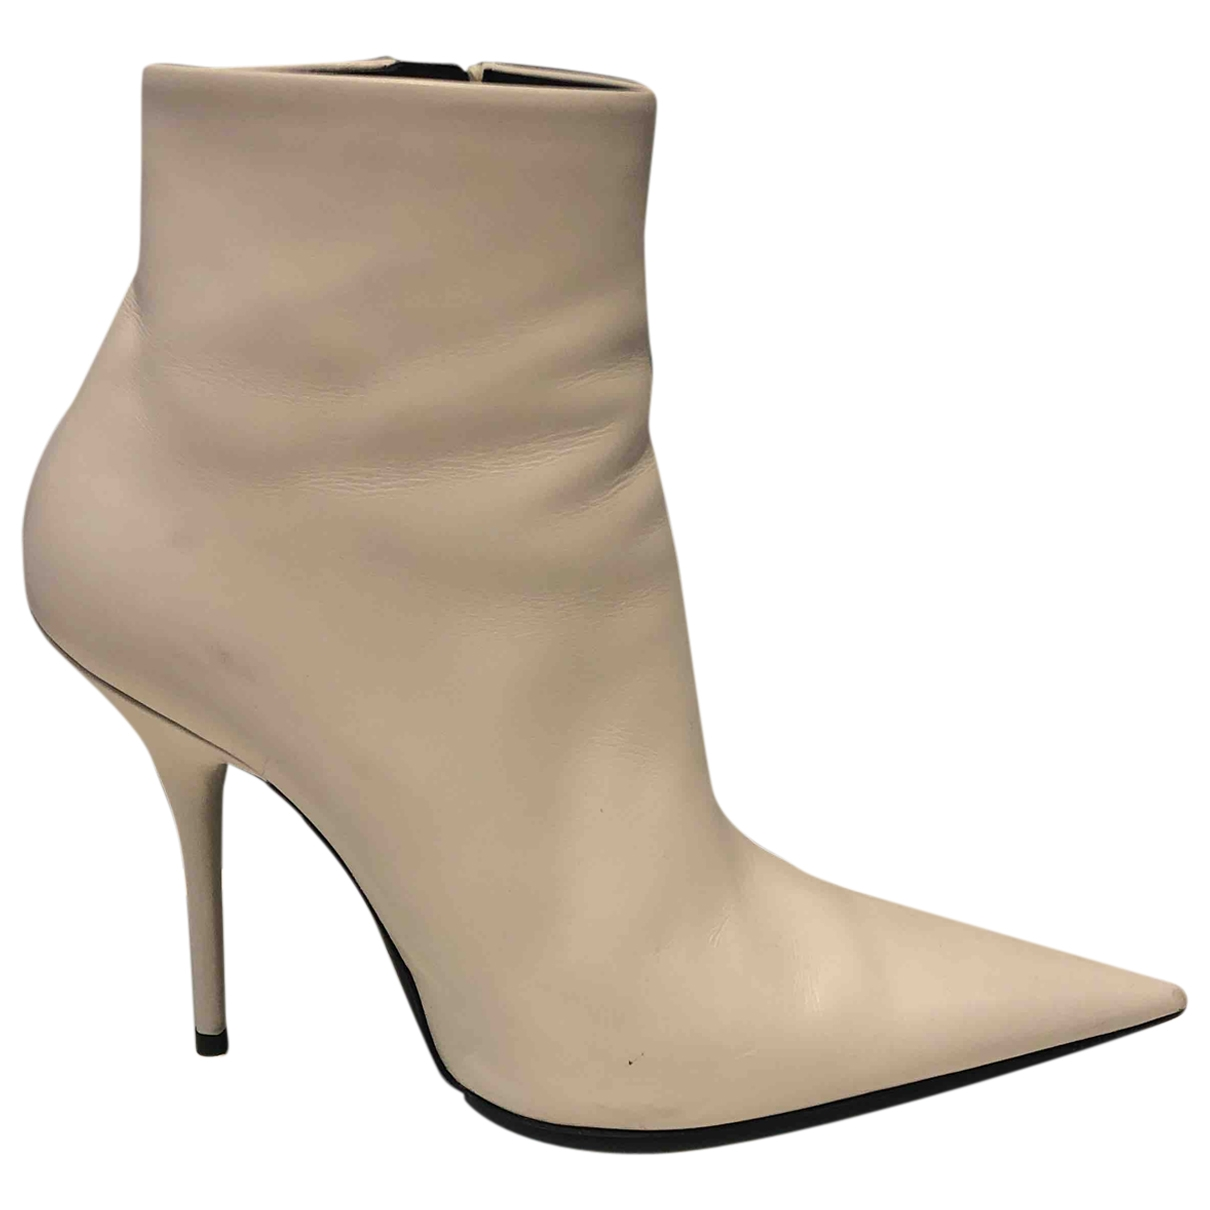 Balenciaga Knife White Leather Ankle boots for Women 39.5 EU